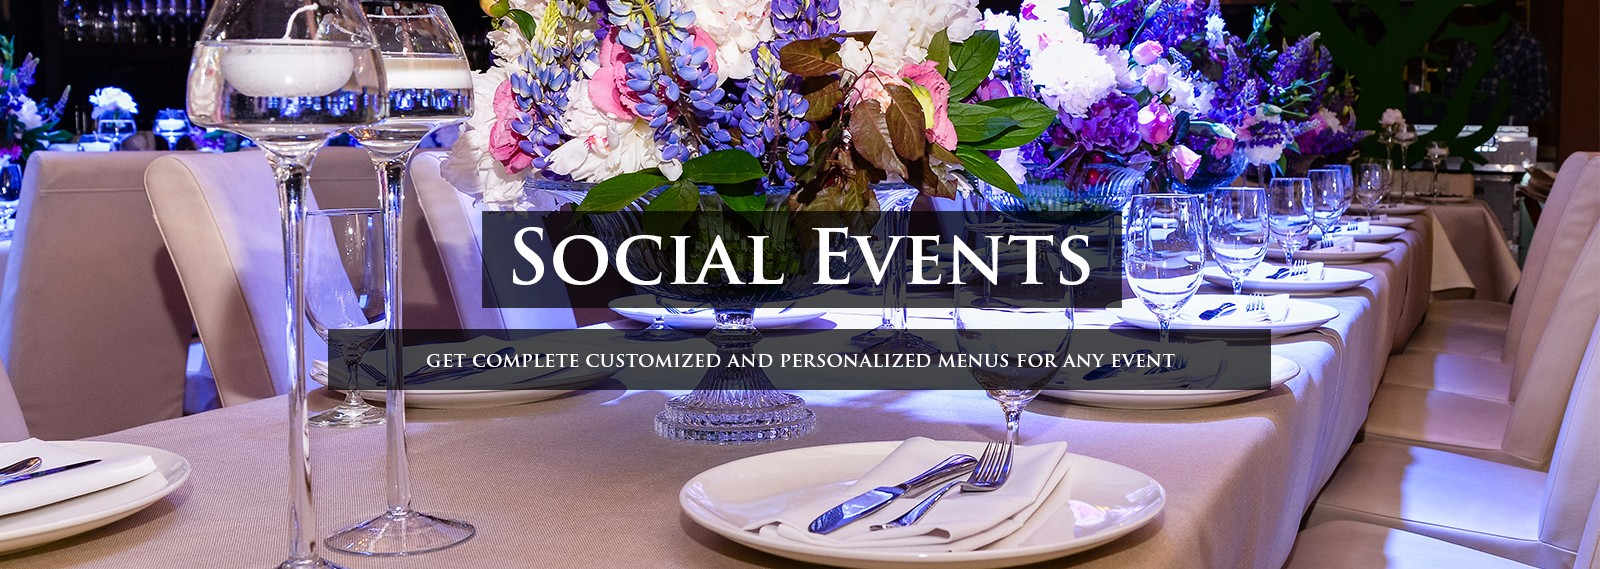 catering order for social events